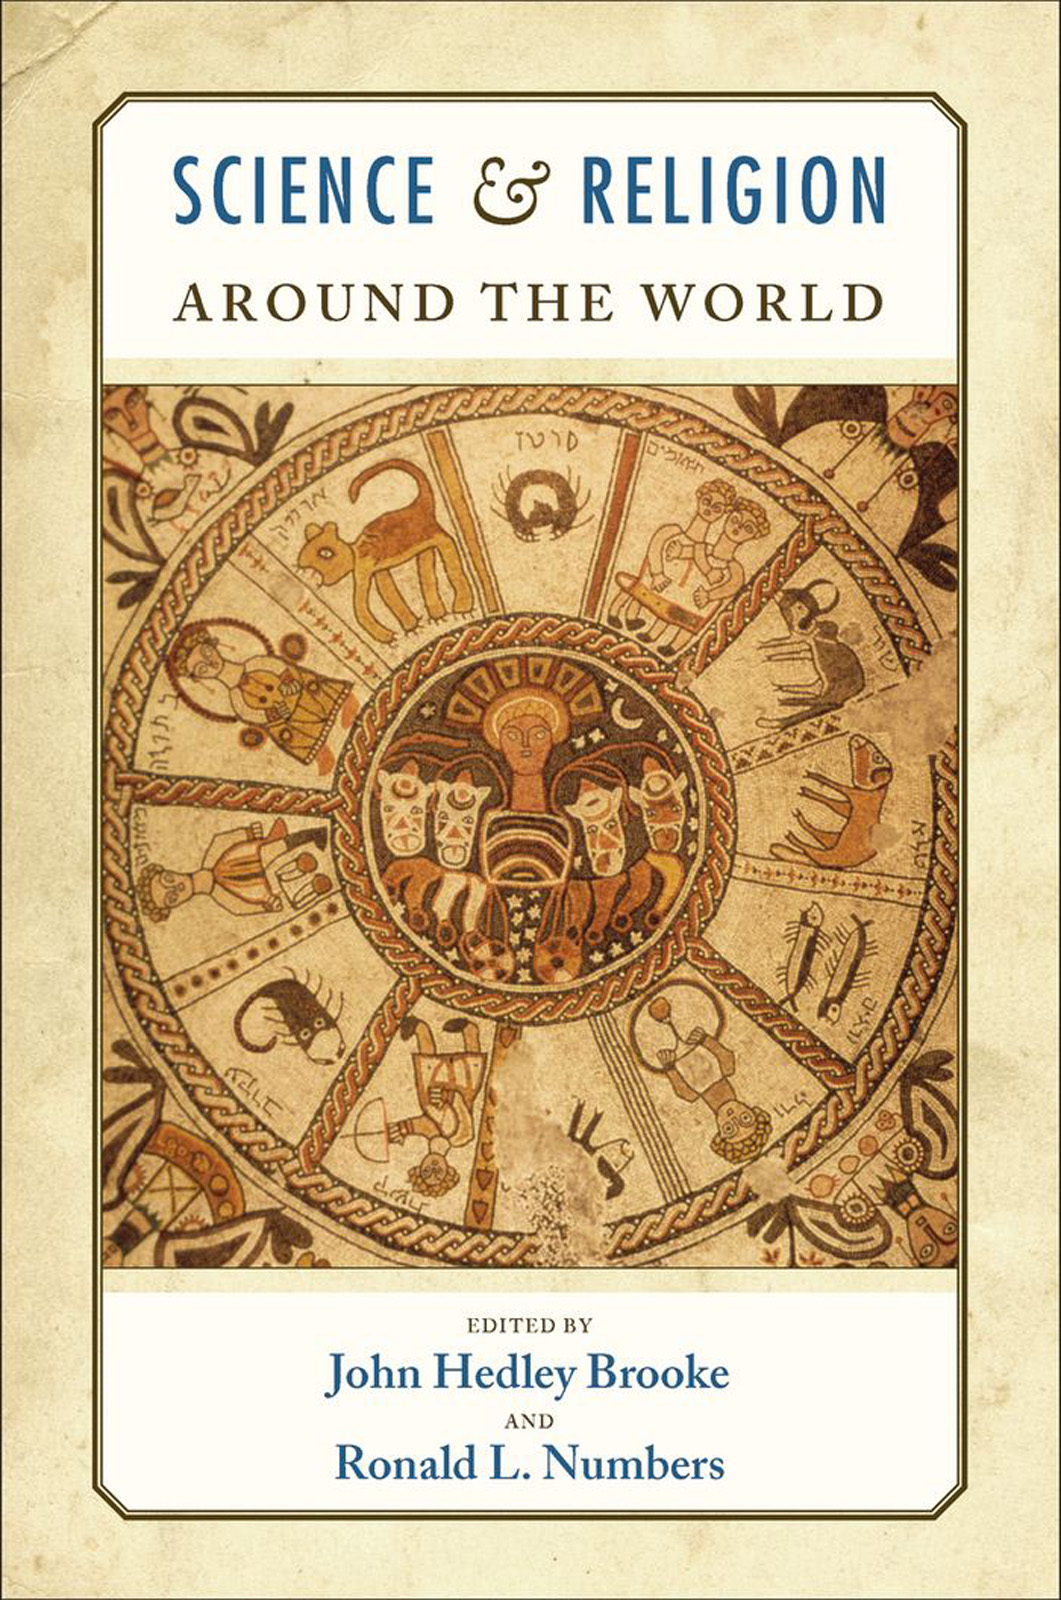 Science and Religion Around the World